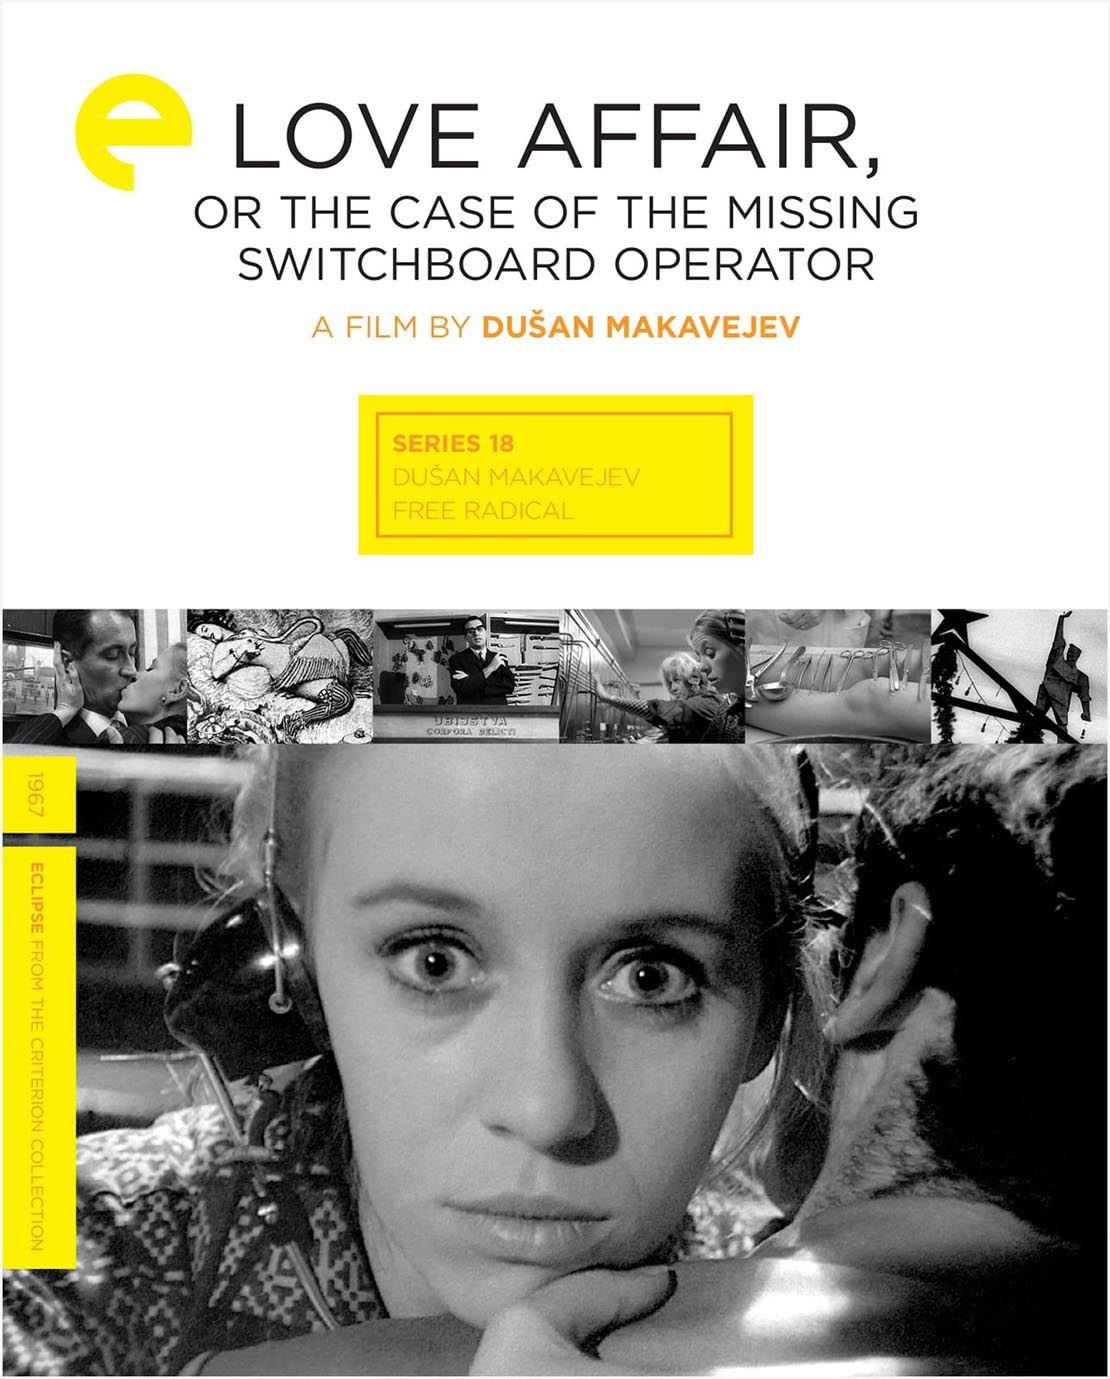 Love Affair, or the Case of the Missing Switchboard Operator